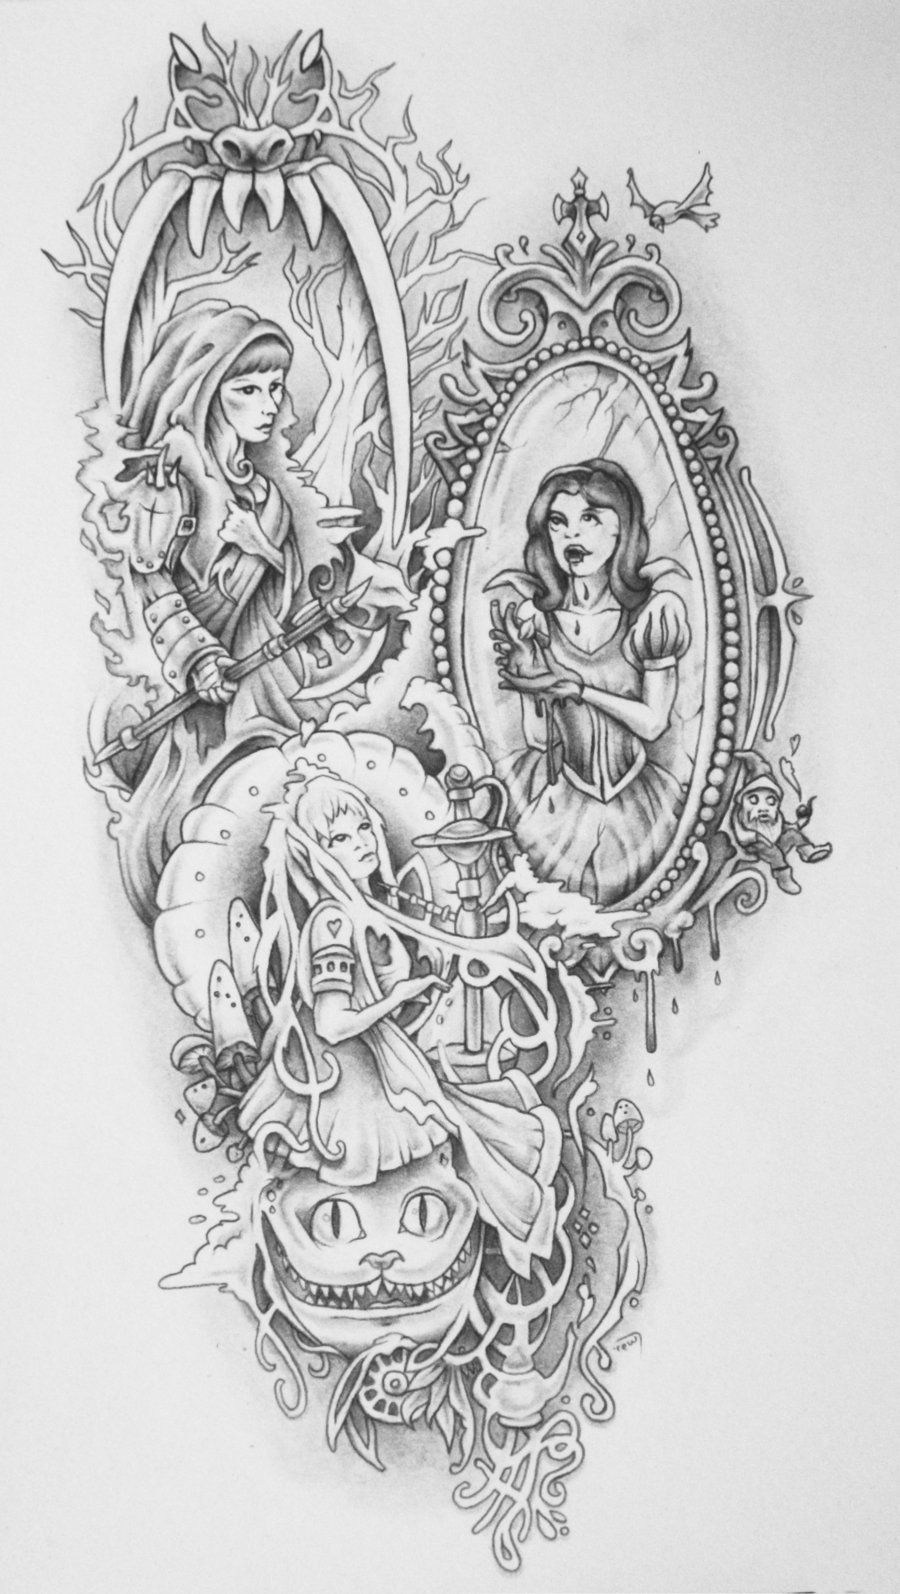 badass fairy tales tattoo shaded by on deviantart tattoos. Black Bedroom Furniture Sets. Home Design Ideas